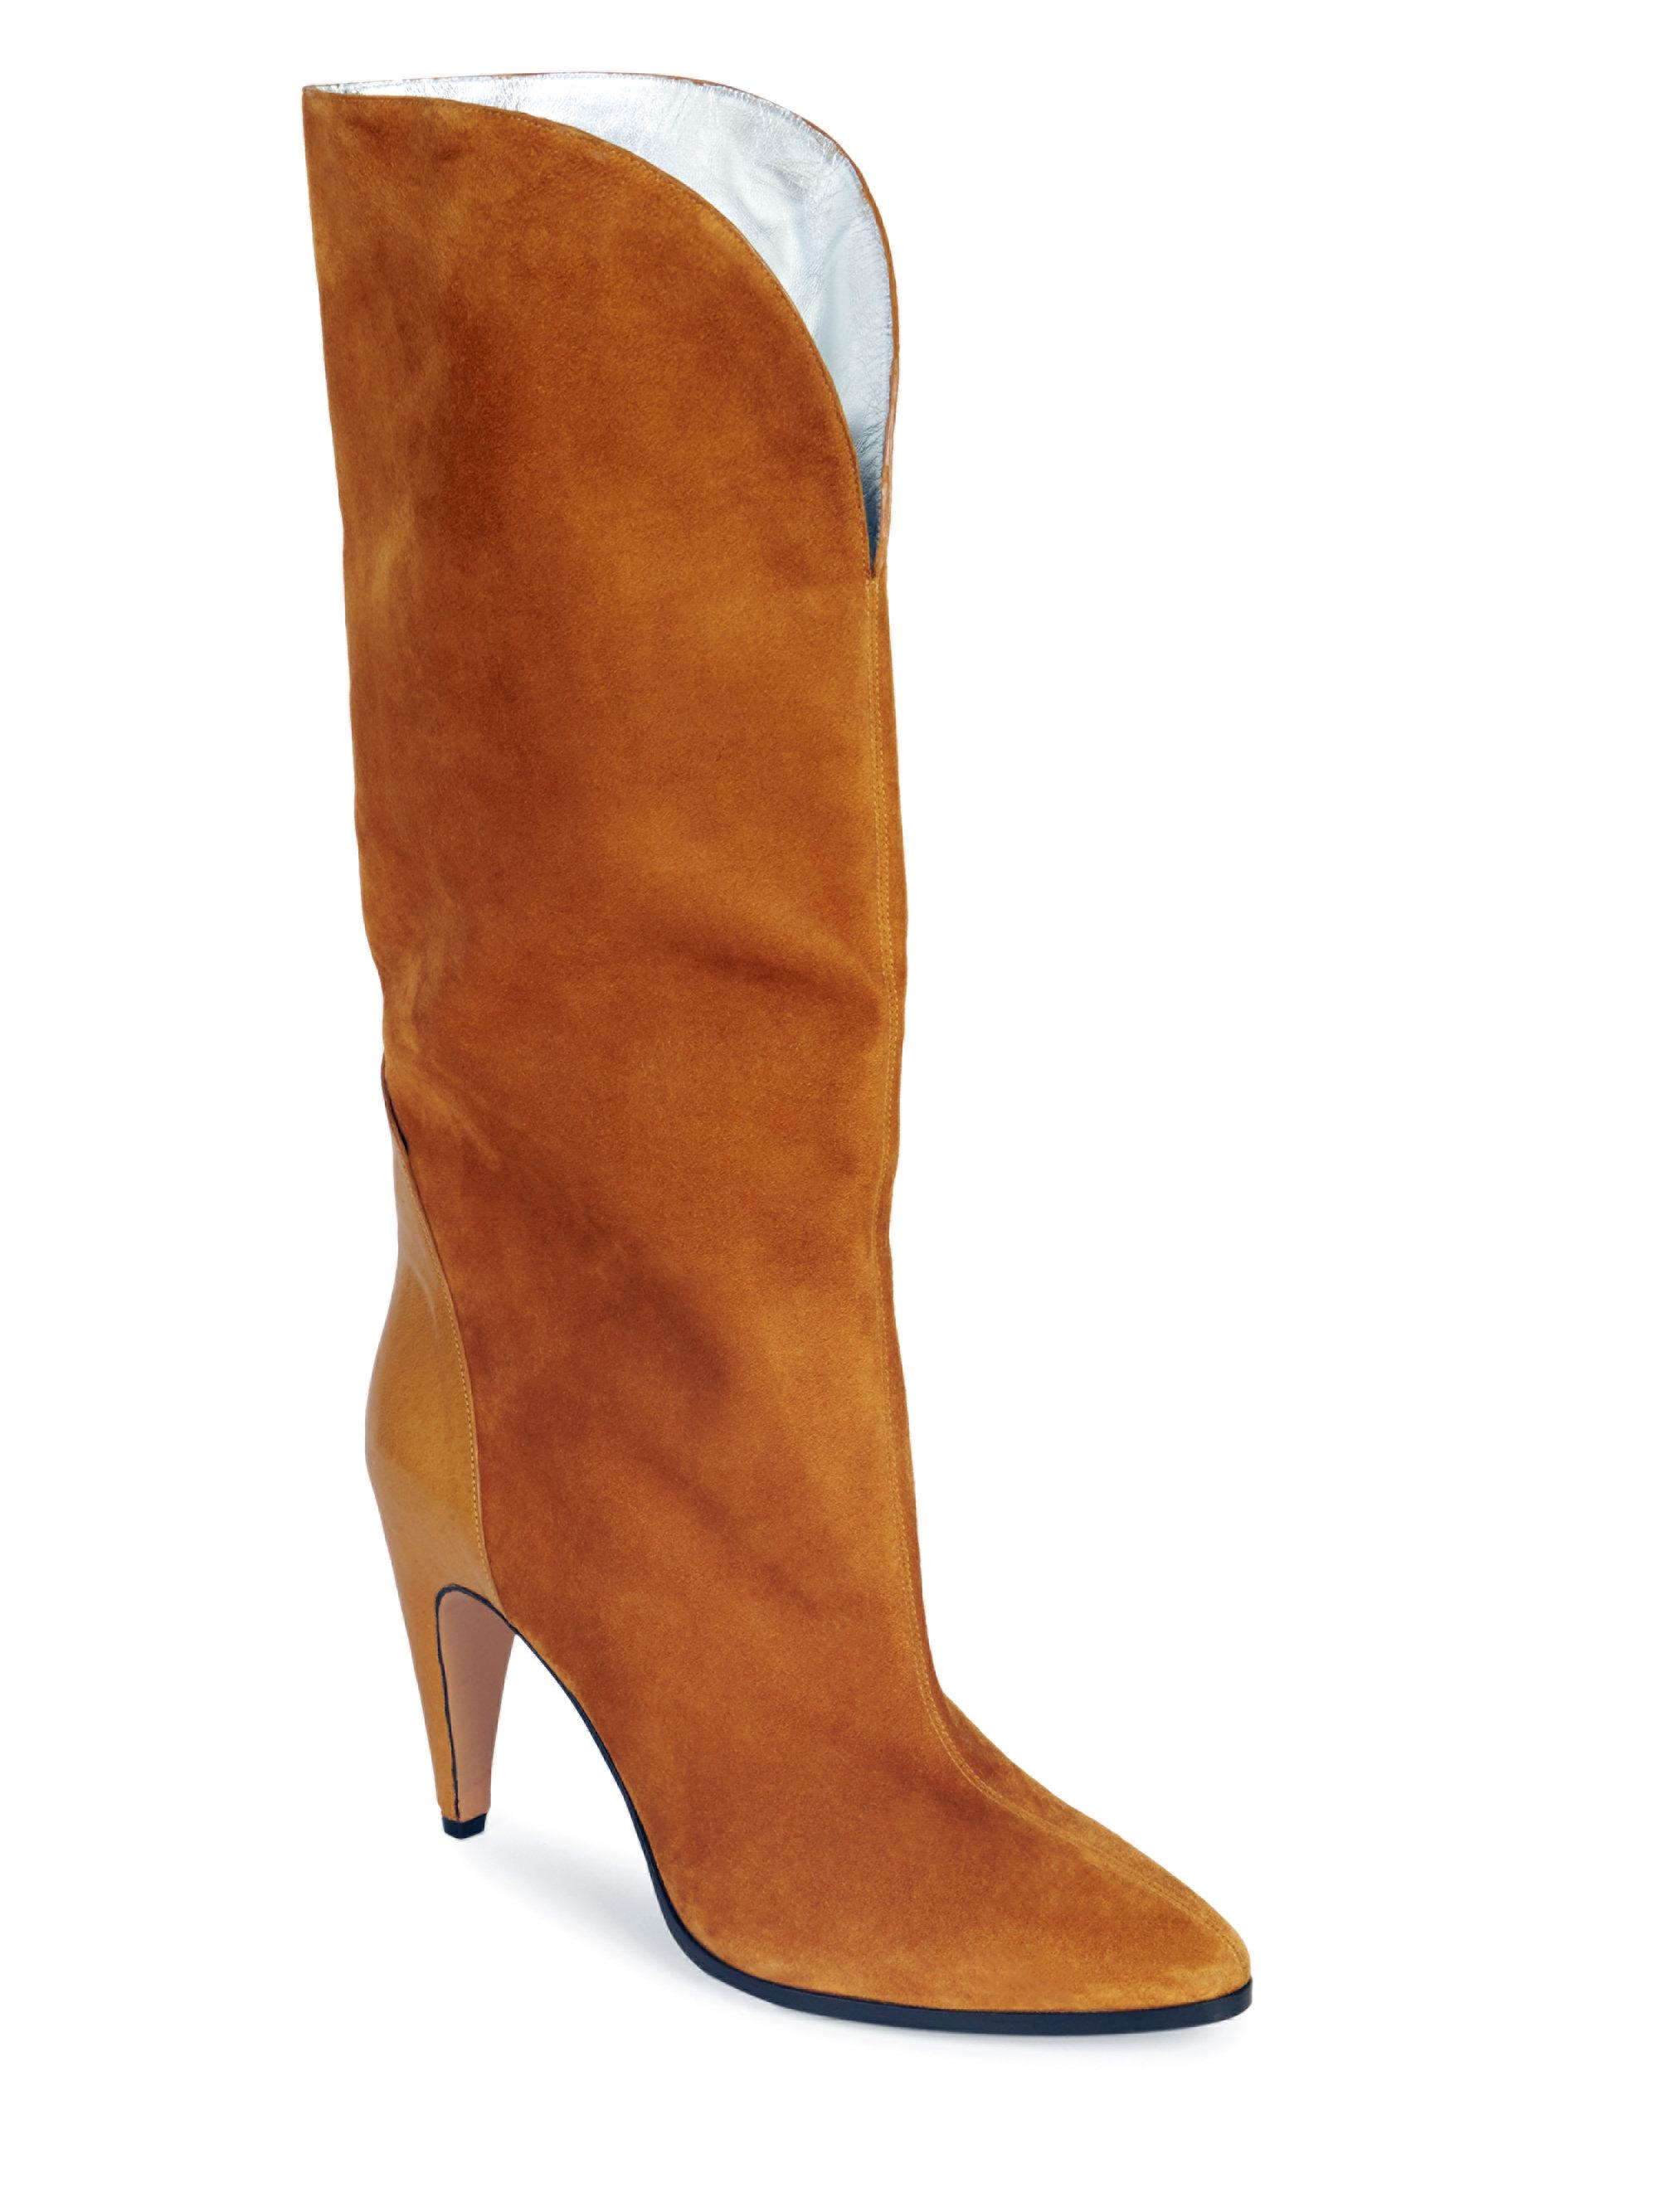 Givenchy Suede Fringe-Trimmed Booties outlet under $60 buy cheap 2014 new clearance cheap real latest collections the best store to get XJqiGKkzb6